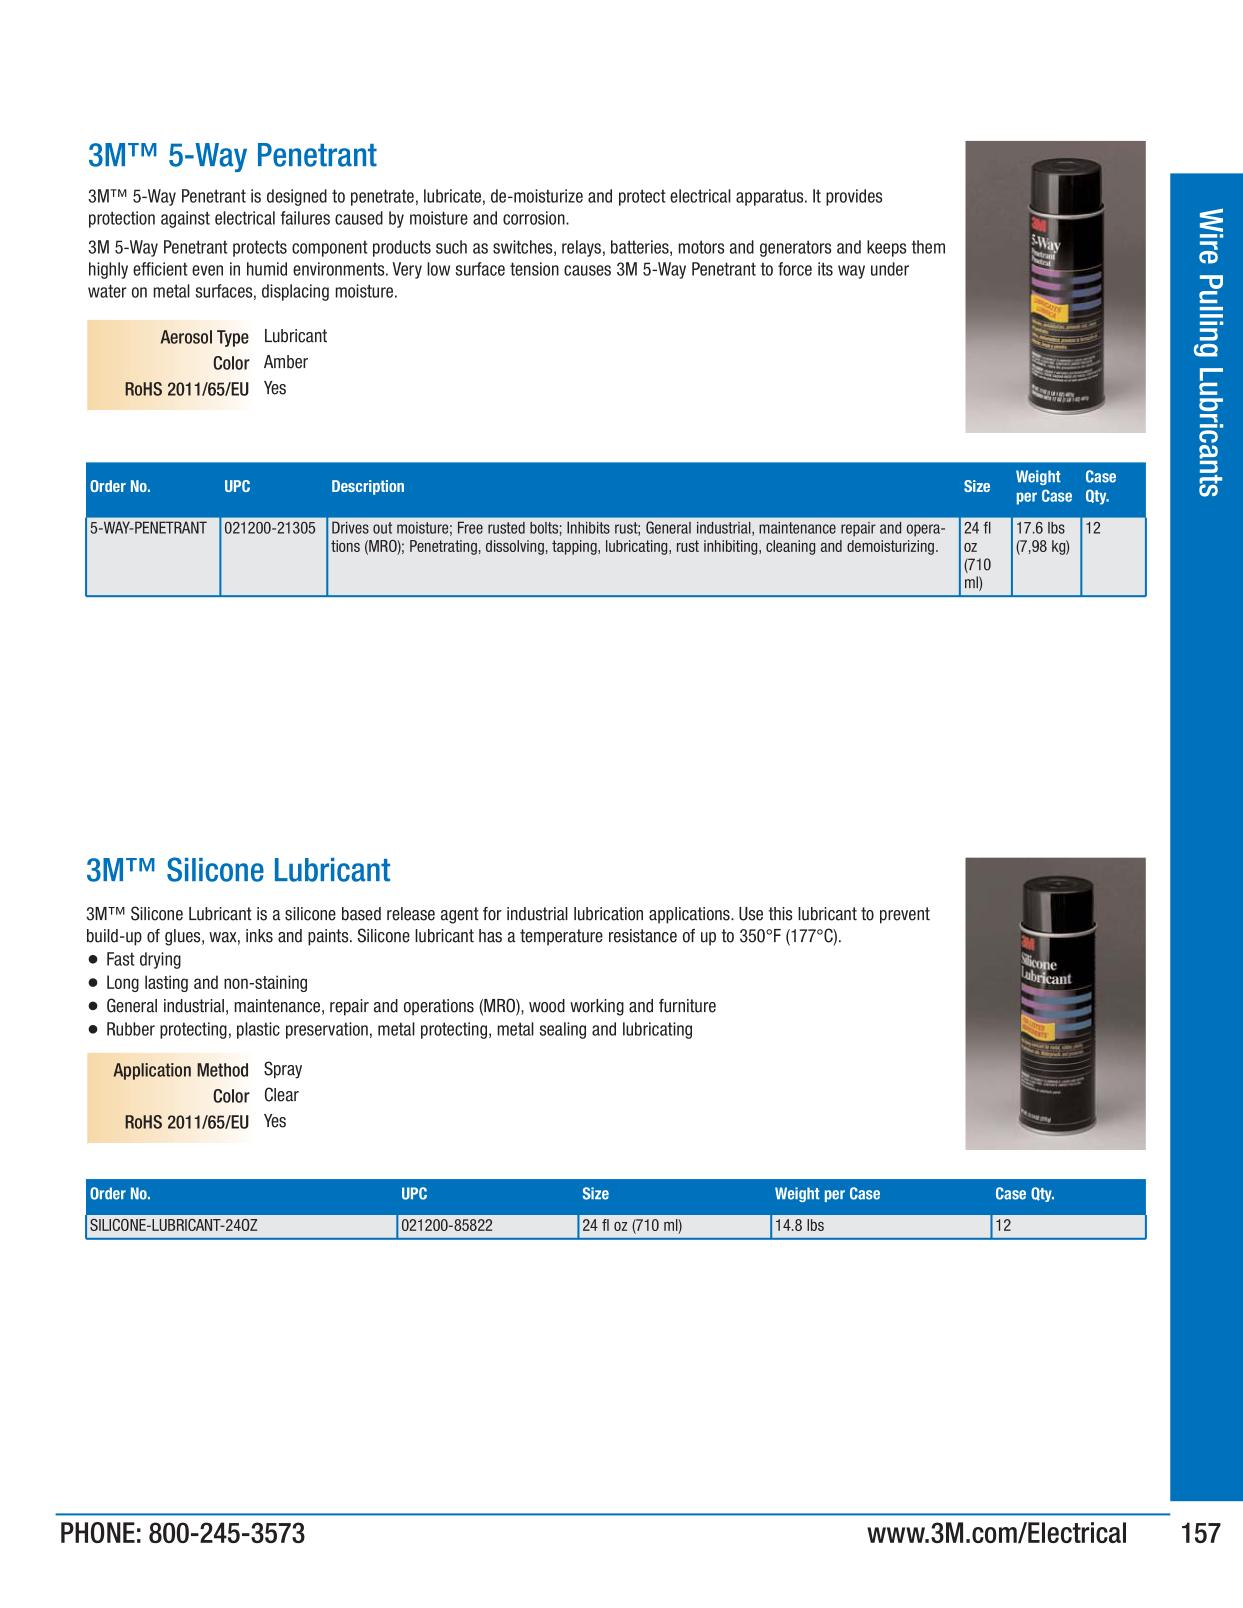 Wire Pulling Lubricants - 3M Electrical Products Page 157